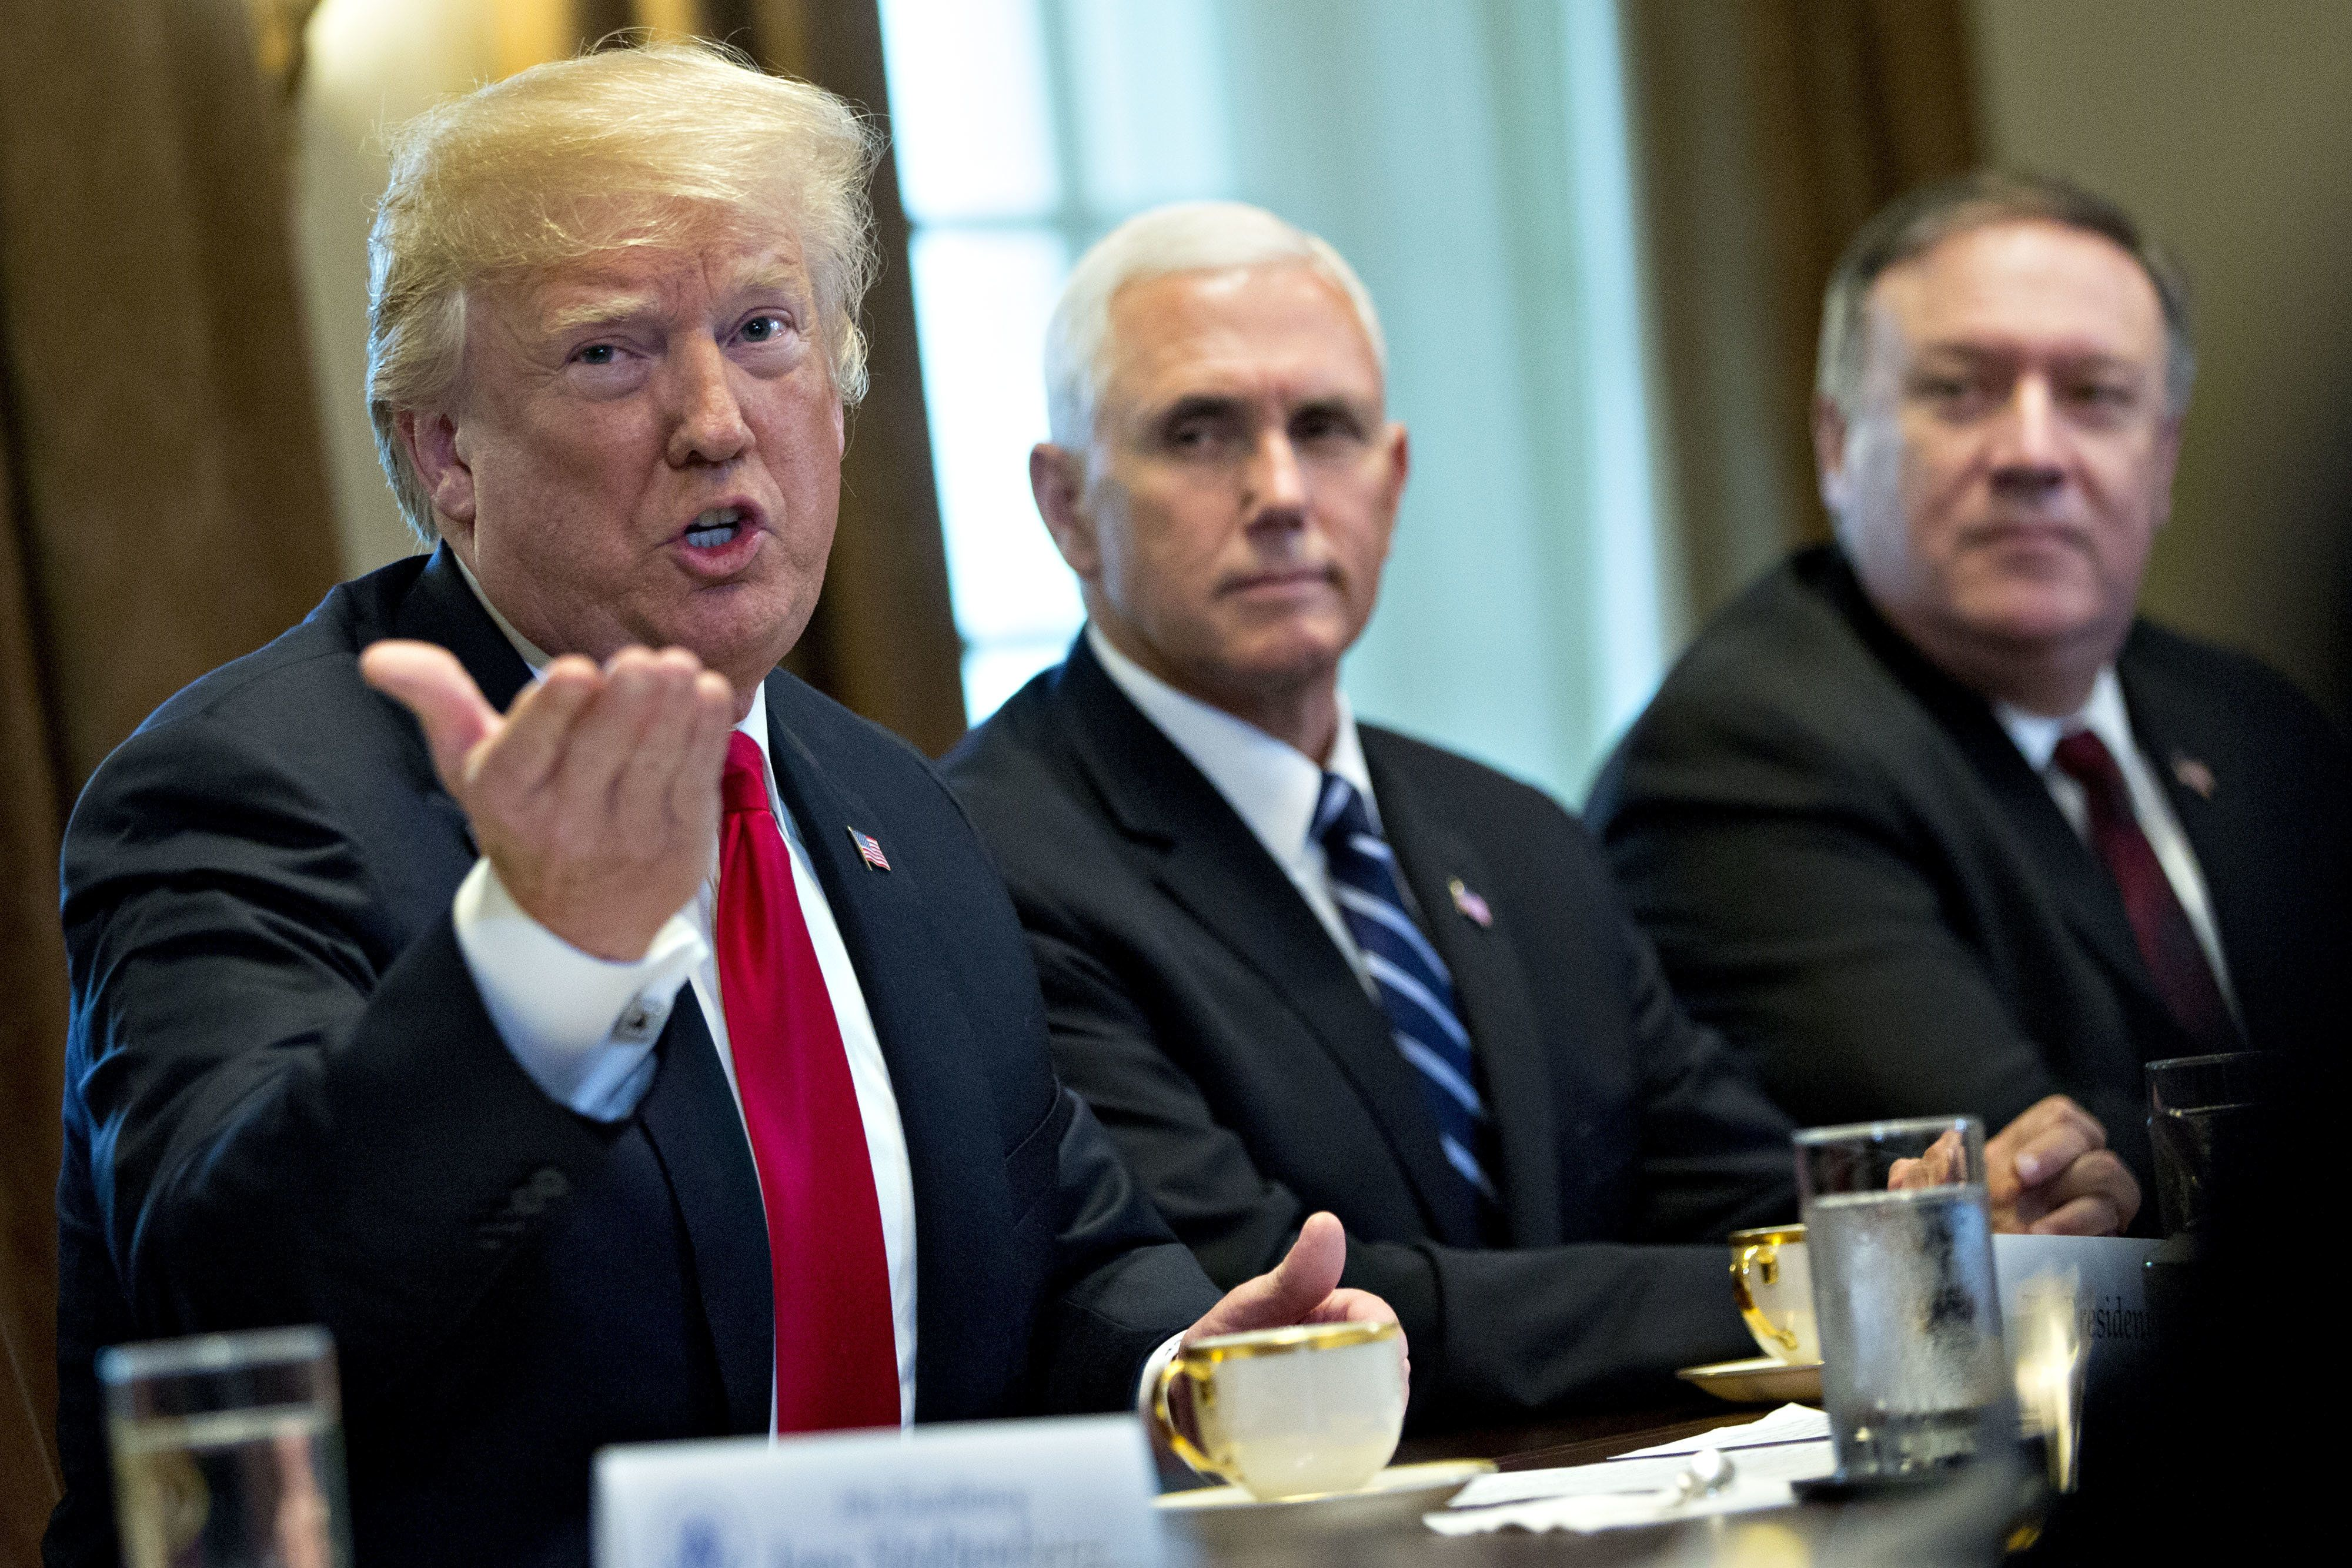 U.S. President Donald Trump speaks as U.S. Vice President Mike Pence, center, and Mike Pompeo, U.S. secretary of state, listen during a meeting with Jens Stoltenberg, secretary general of the North Atlantic Treaty Organization (NATO), not pictured, in the Cabinet Room of the White House in Washington, D.C. U.S., on Thursday, May 17, 2018. The White House said the two leaders will be discussing the upcoming NATO Summit in July. Photographer: Andrew Harrer/Bloomberg via Getty Images